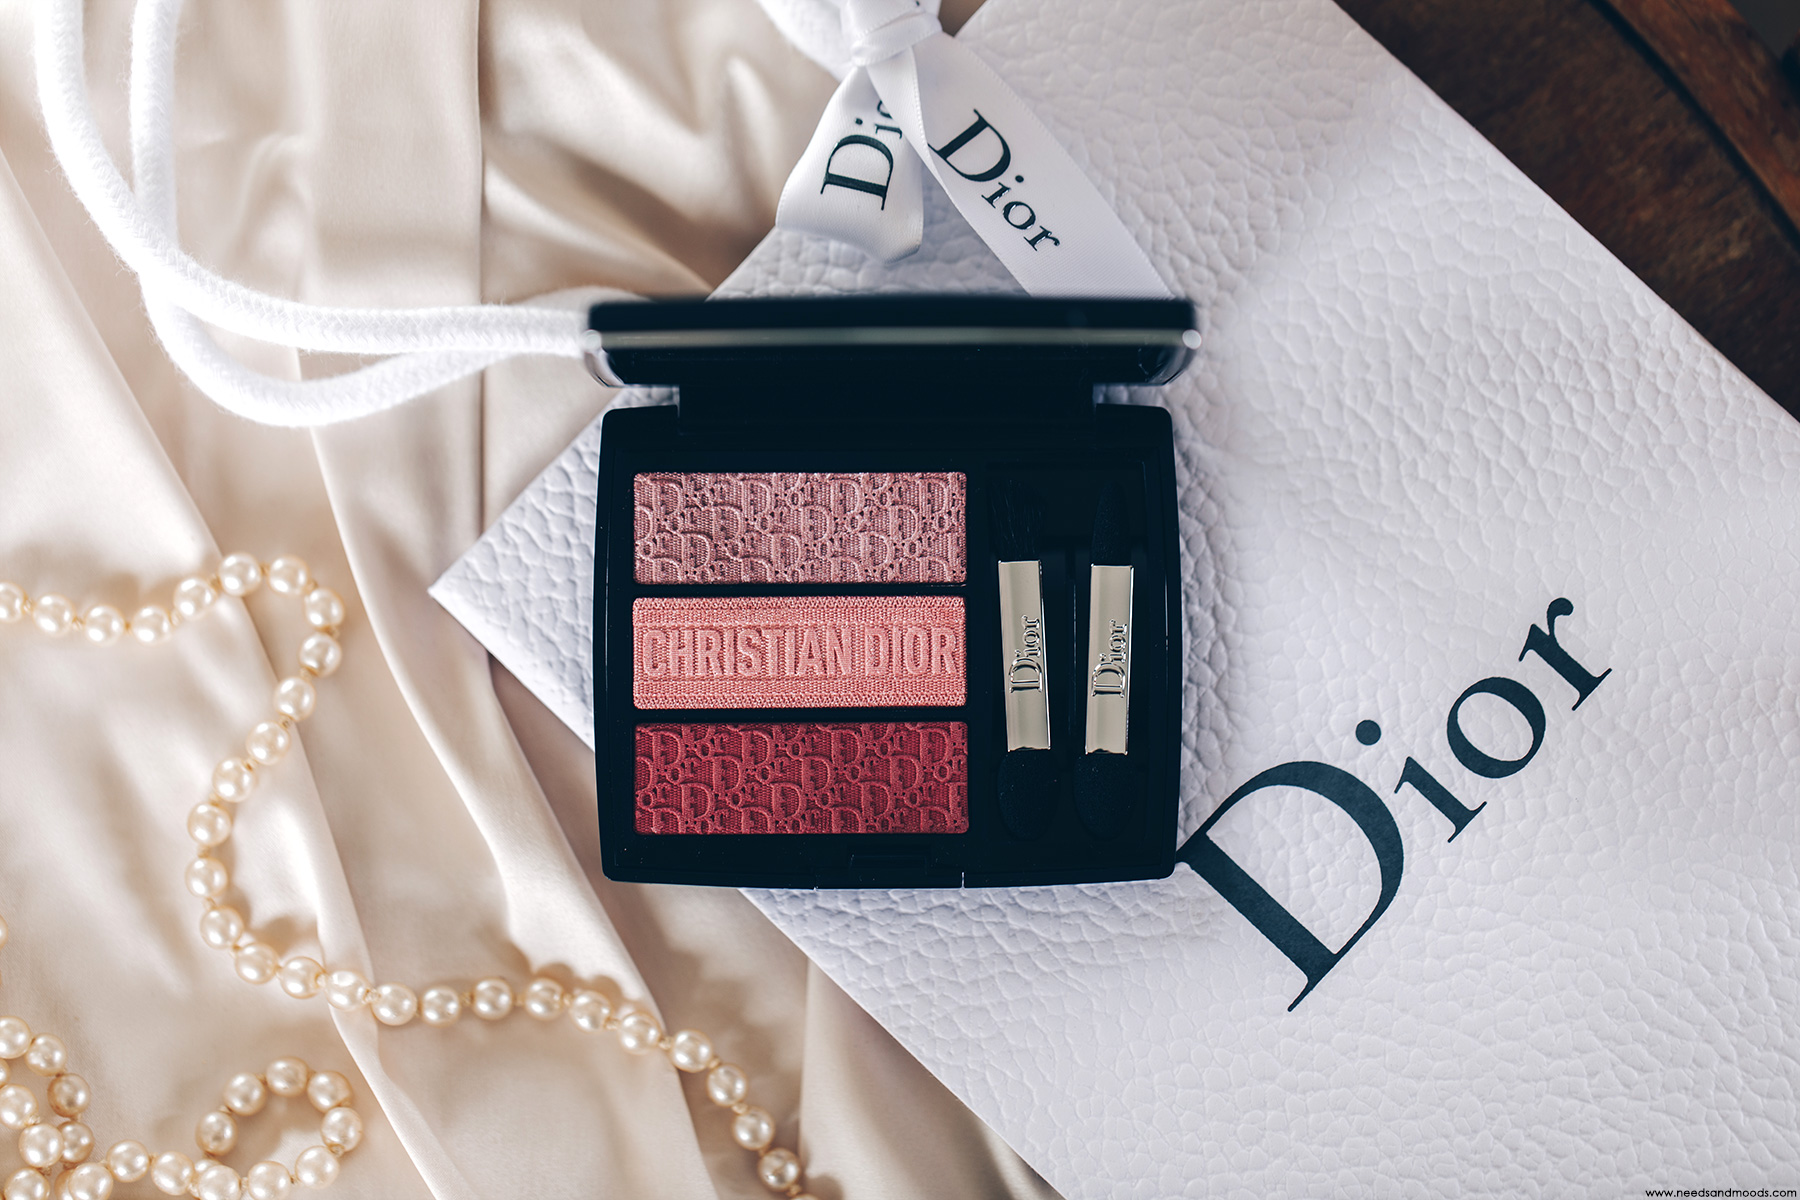 dior 3 couleurs tri o blique rosy canvas